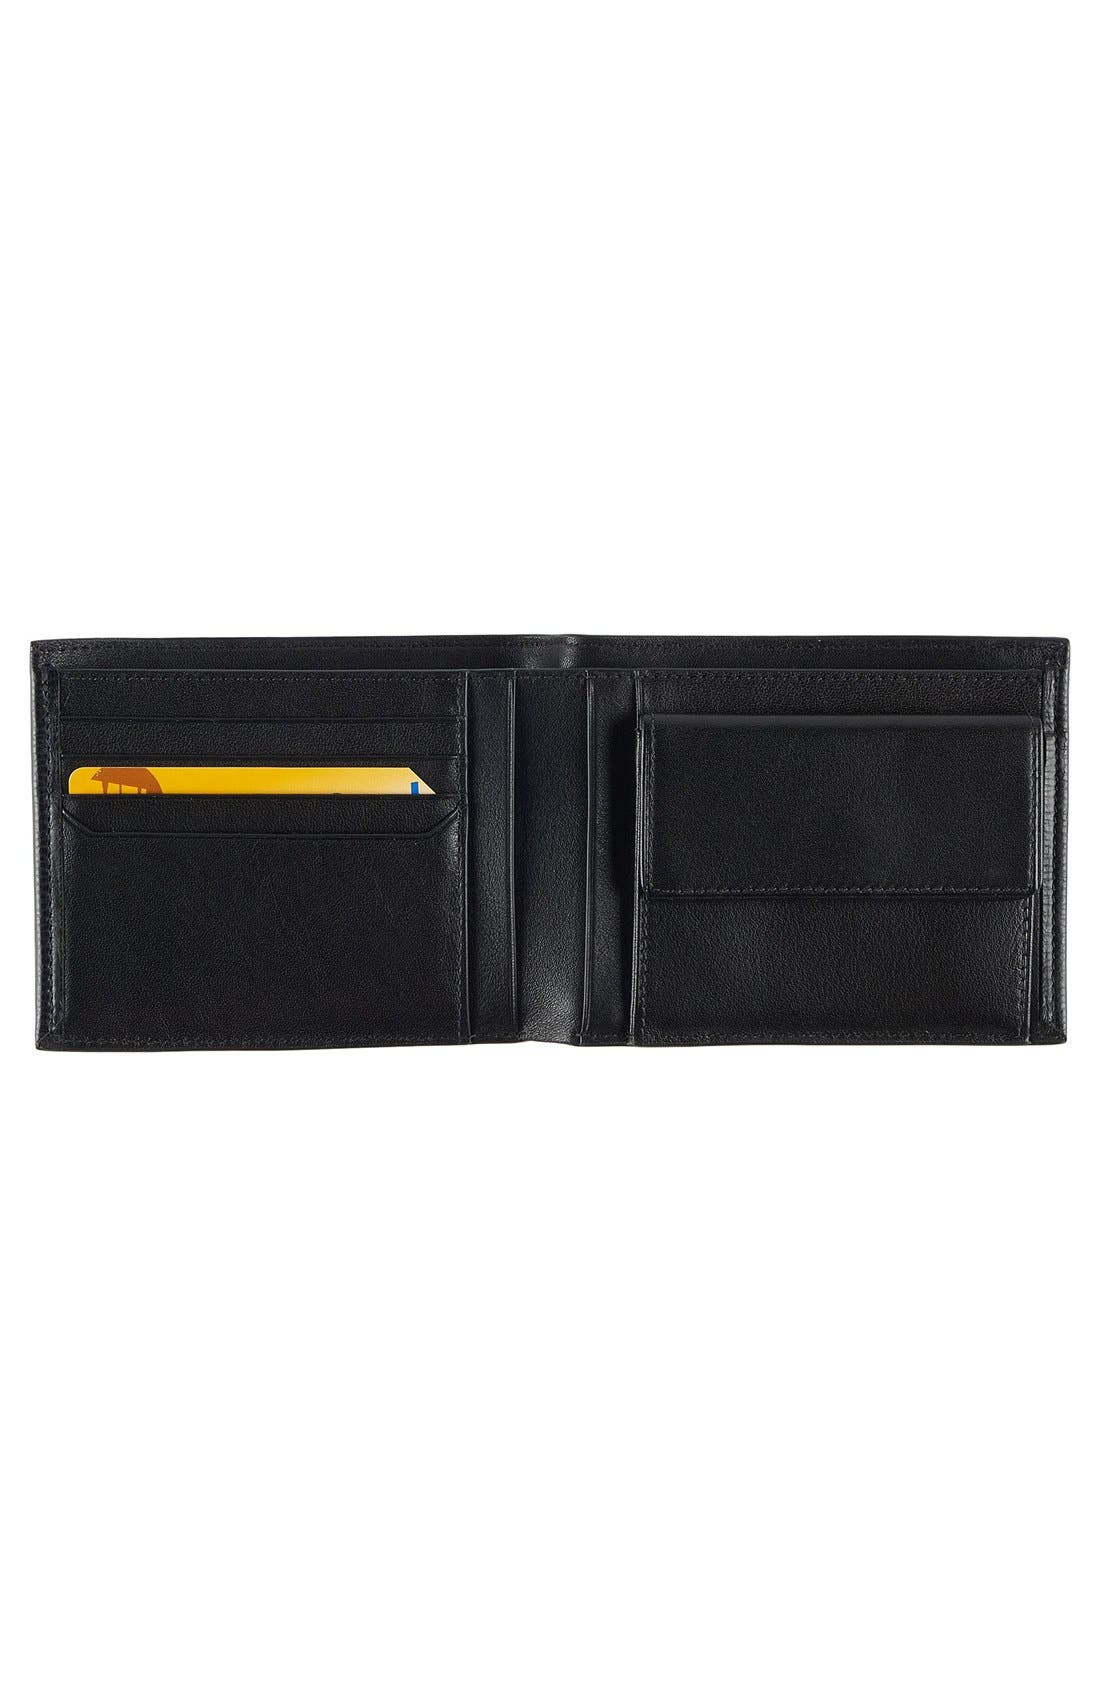 Alternate Image 2  - Tumi Monaco Global Leather Wallet with Coin Pocket